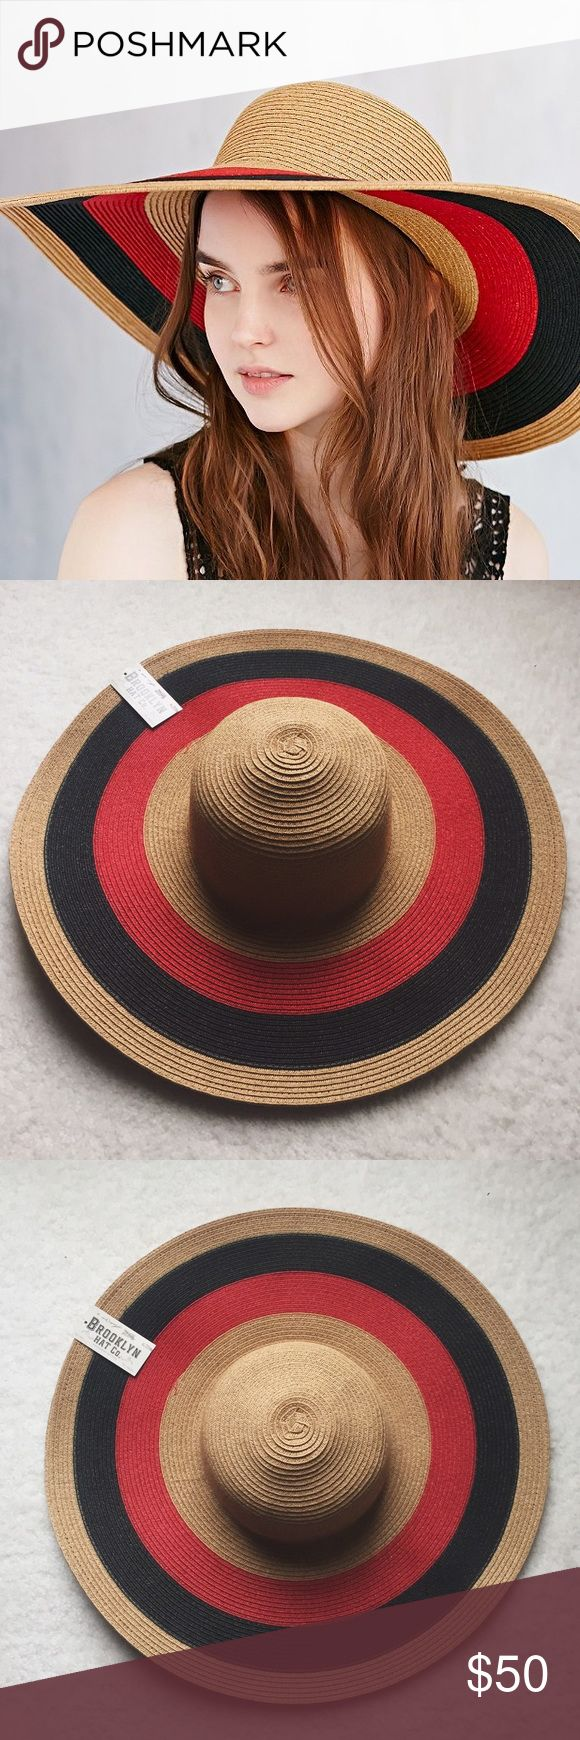 Free People striped floppy sun hat Structured and perfect for keeping the sun away from your face. Brand is Brooklyn Hat Co., purchased at Free People (was also sold at Urban Outfitters). Offers welcome! Free People Accessories Hats